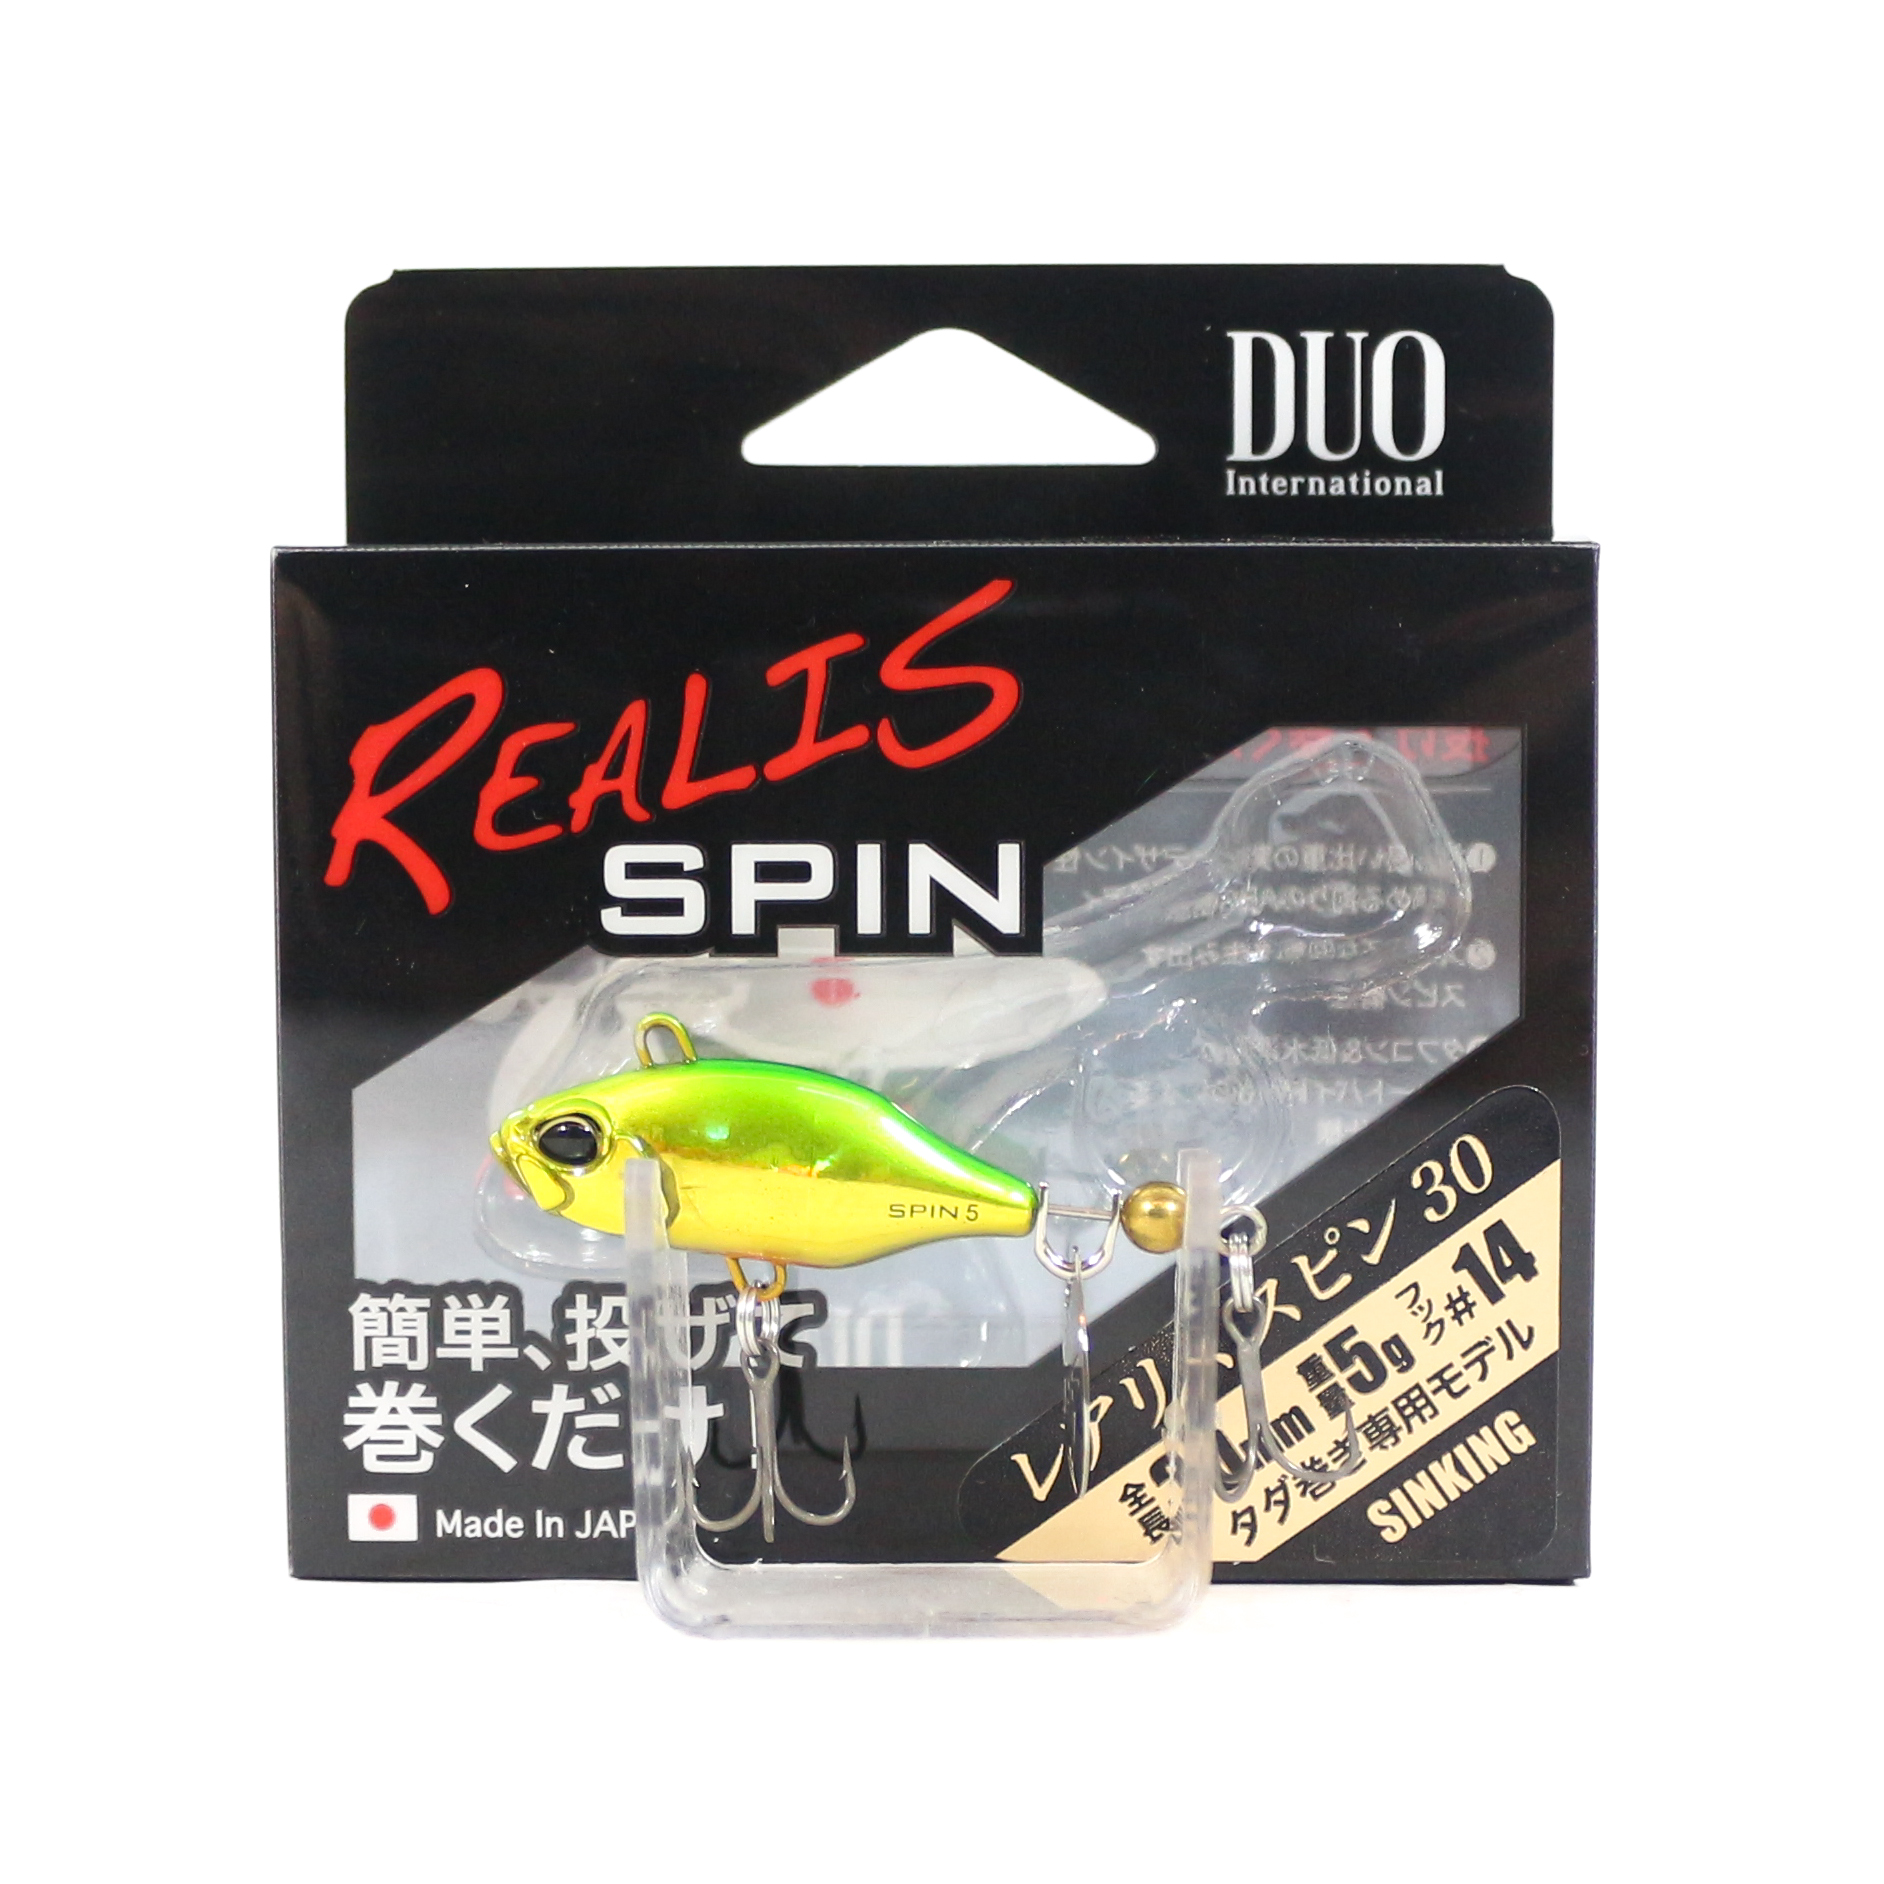 Duo Realis Spin 5 grams Spinner Bait Lure CDA3185 (0254)